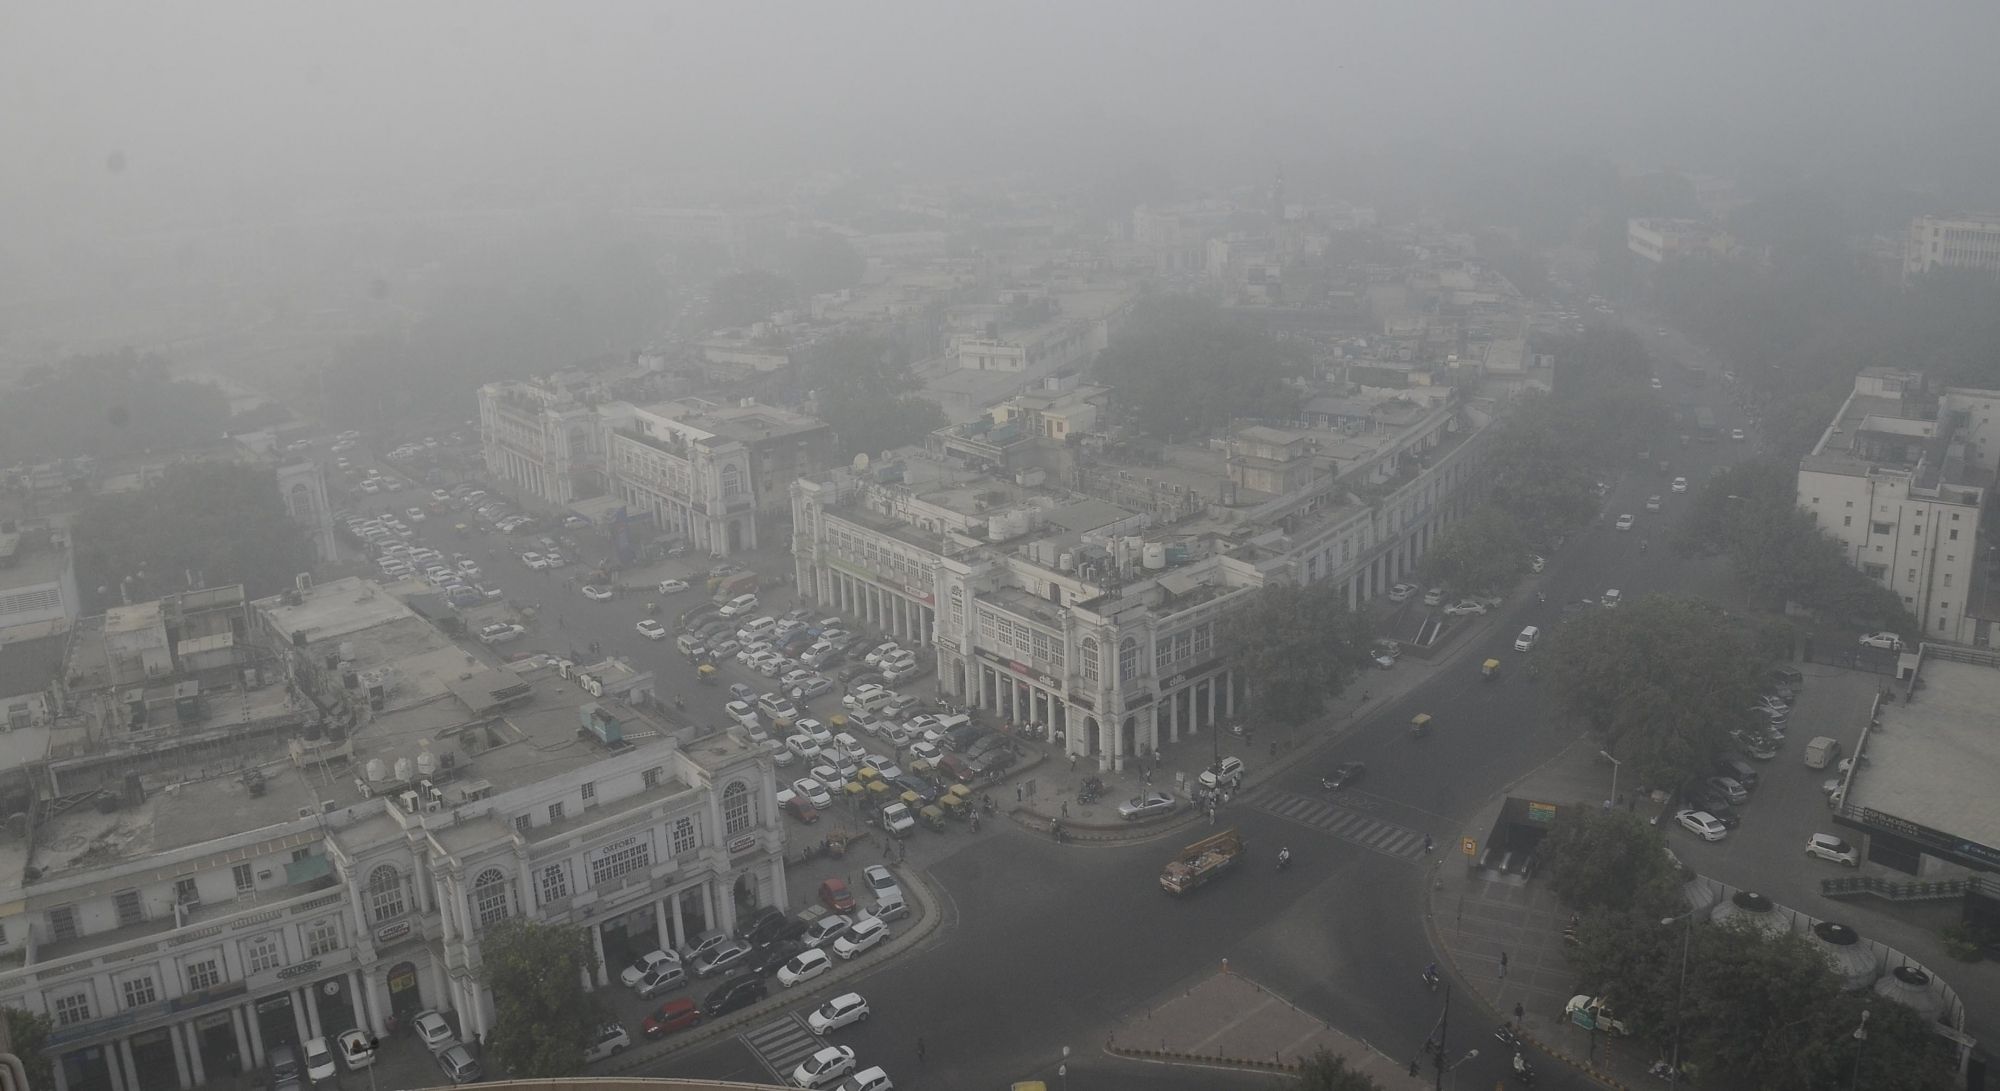 Delhi remains under a dense smog cover for a large part of the year, with the winter months particularly bad. (Credit: IANS)